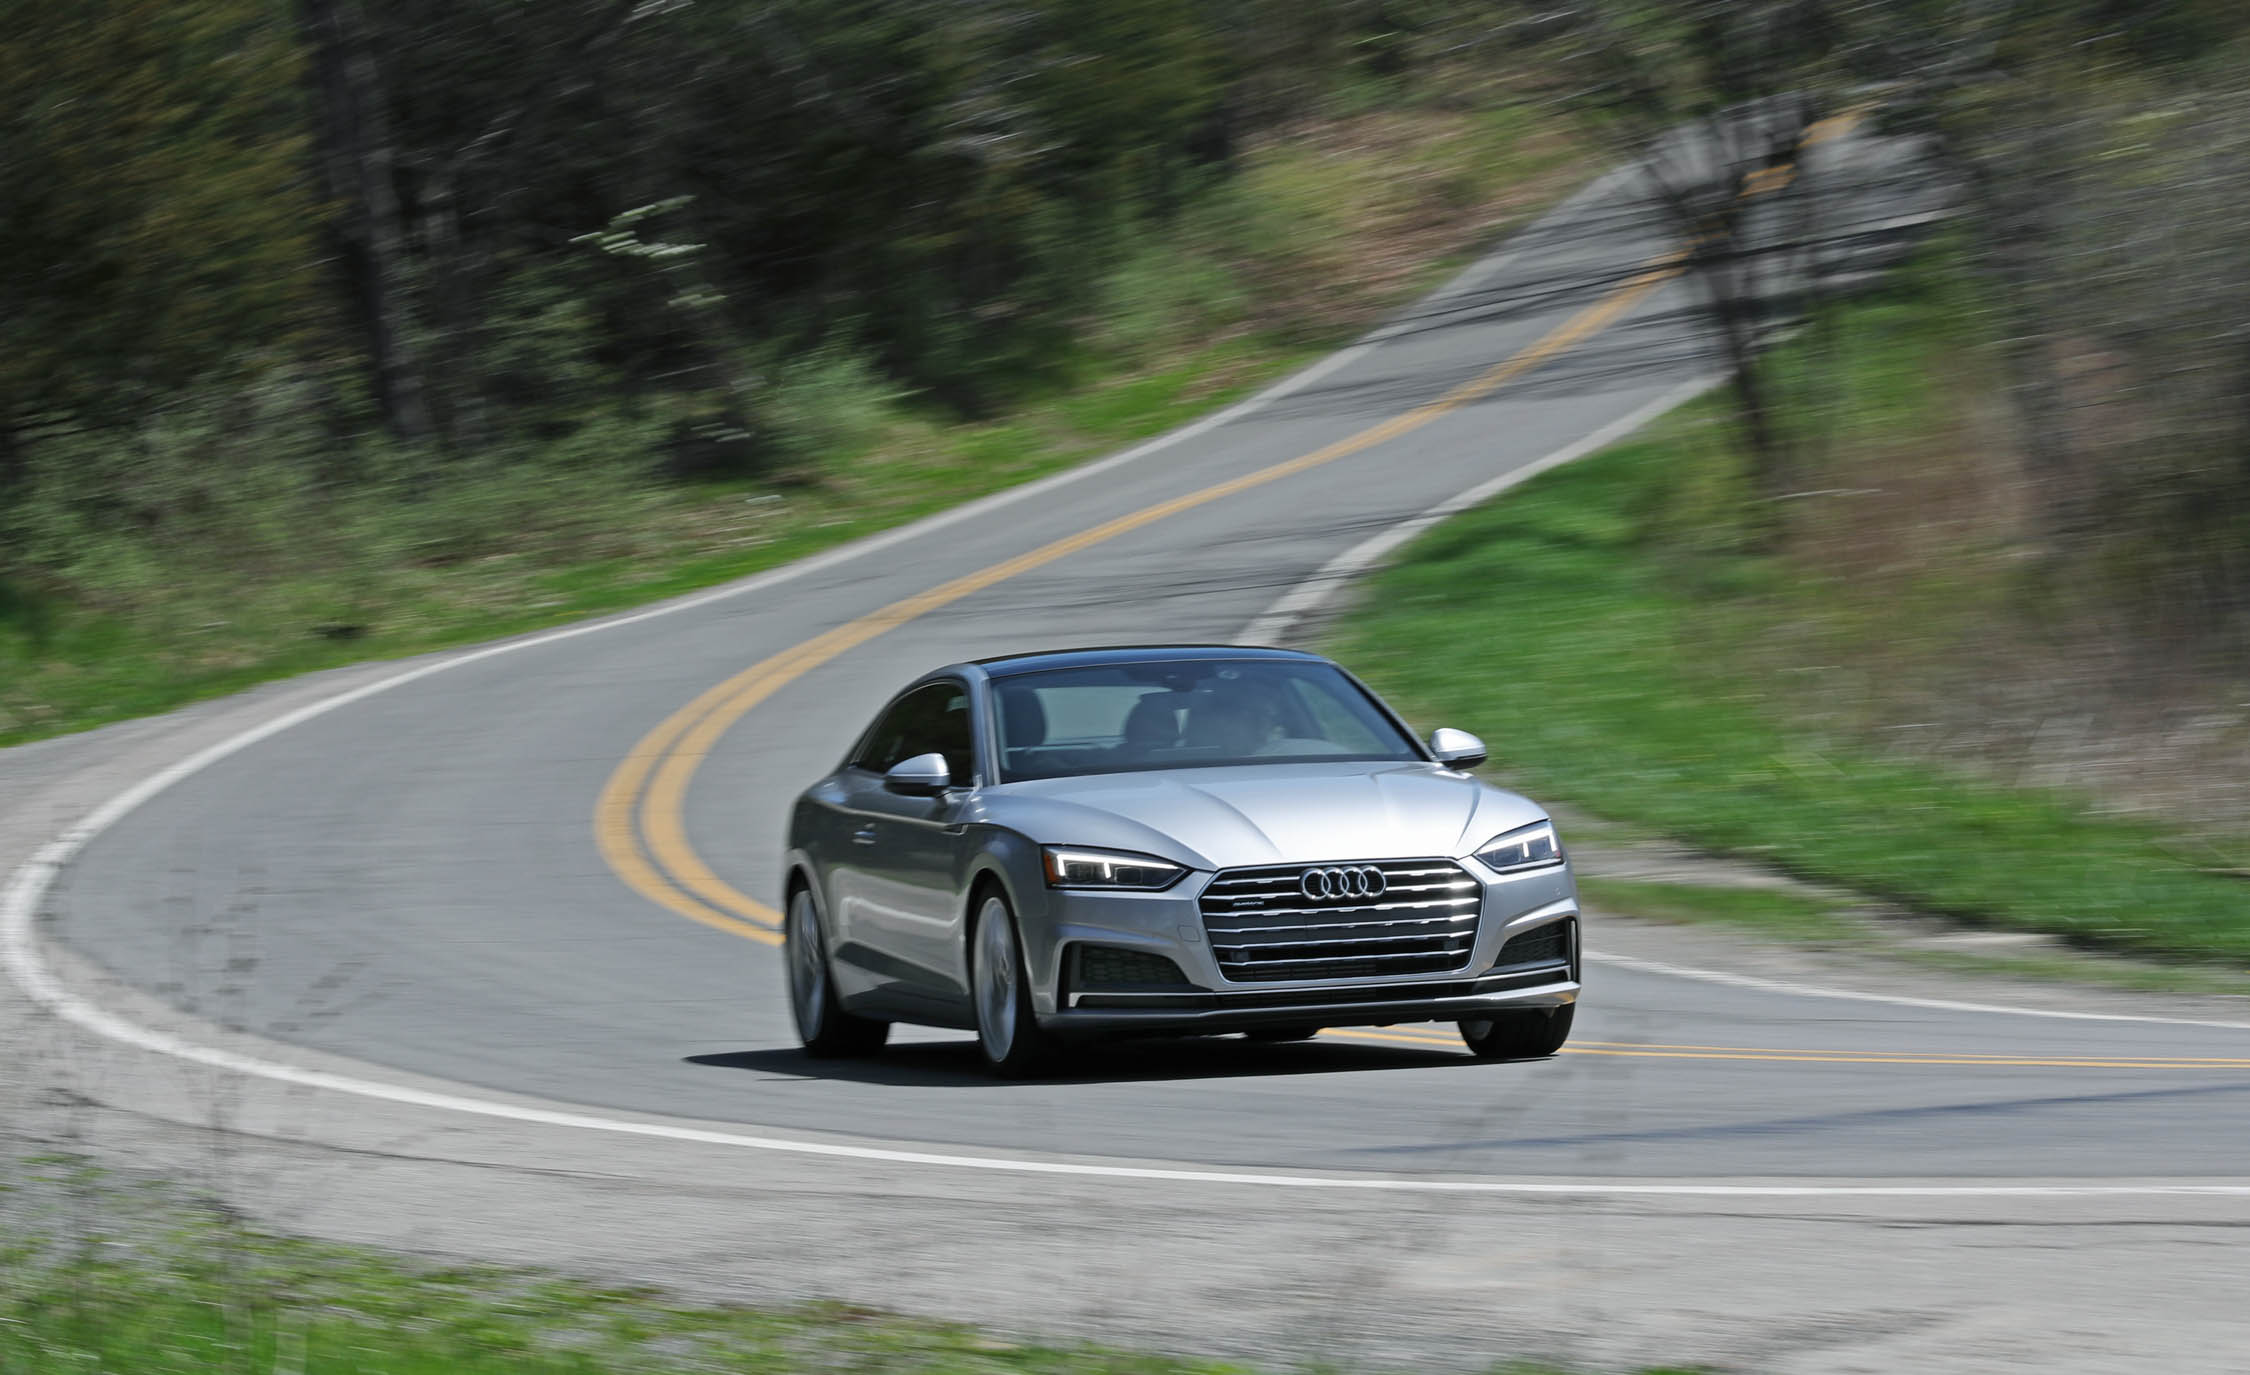 2018 Audi A5 Coupe Test Drive (Photo 41 of 50)